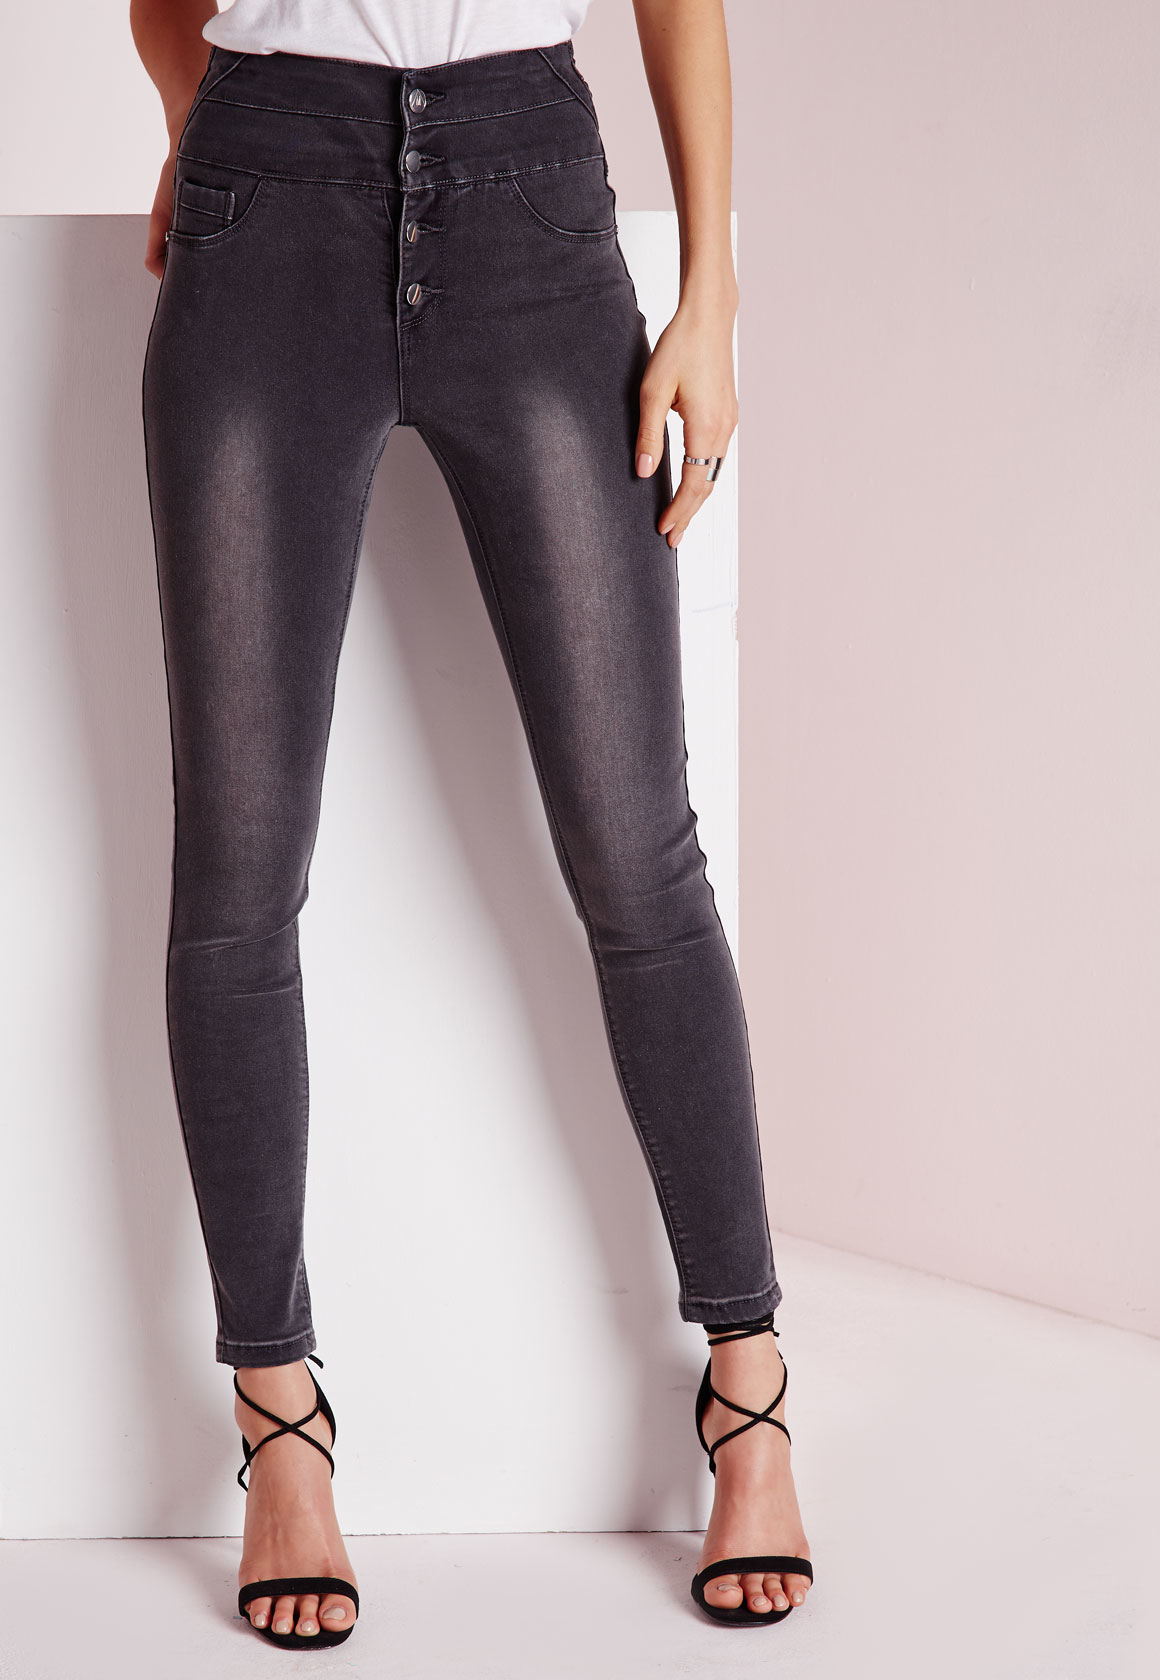 7 For All Mankind® b(air) High Waist Raw Hem Ankle Skinny Jeans (Pure Soft Grey).